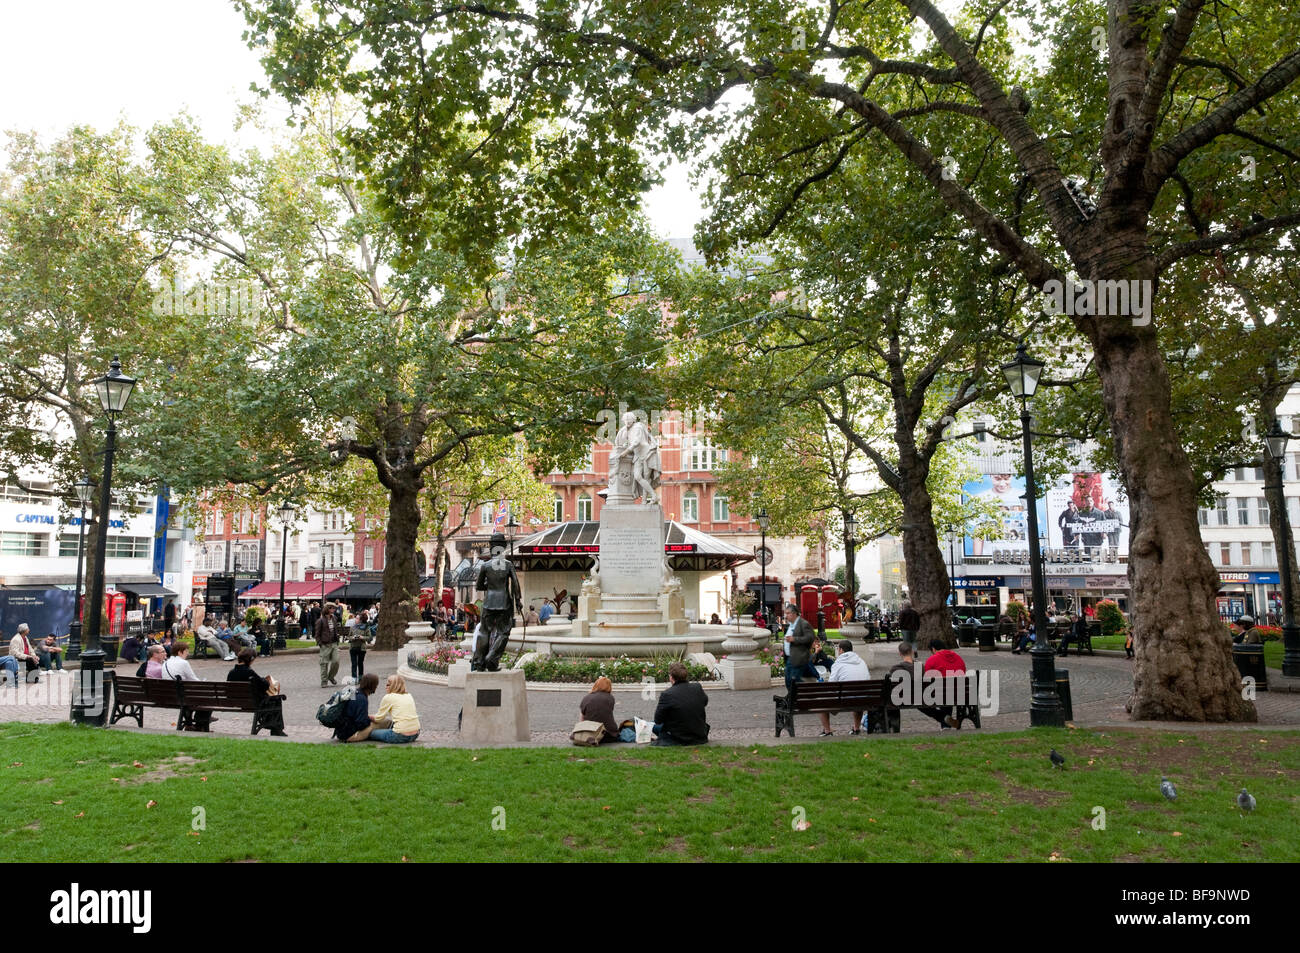 Leicester Square, London, England, UK - Stock Image